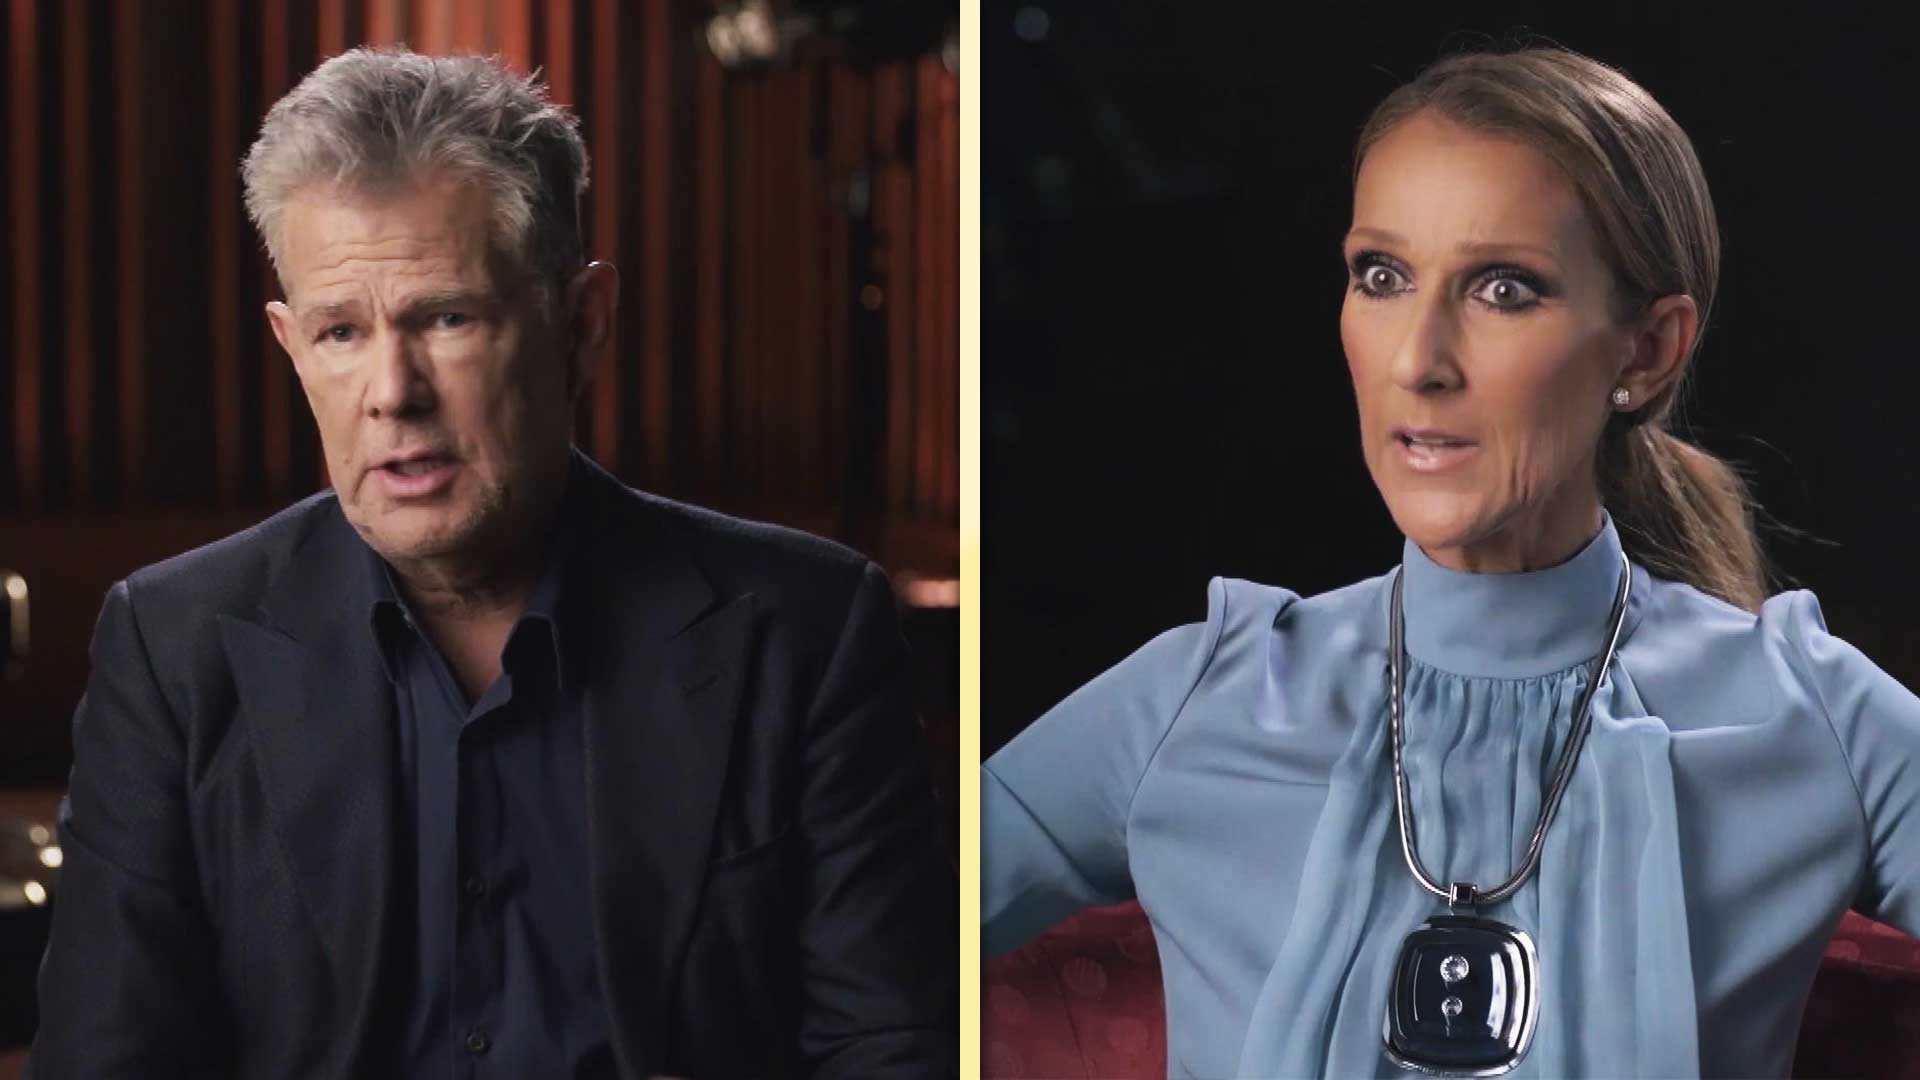 'Off the Record' Sneak Peek: Celine Dion on the First Time She Sang for David Foster (Exclusive)